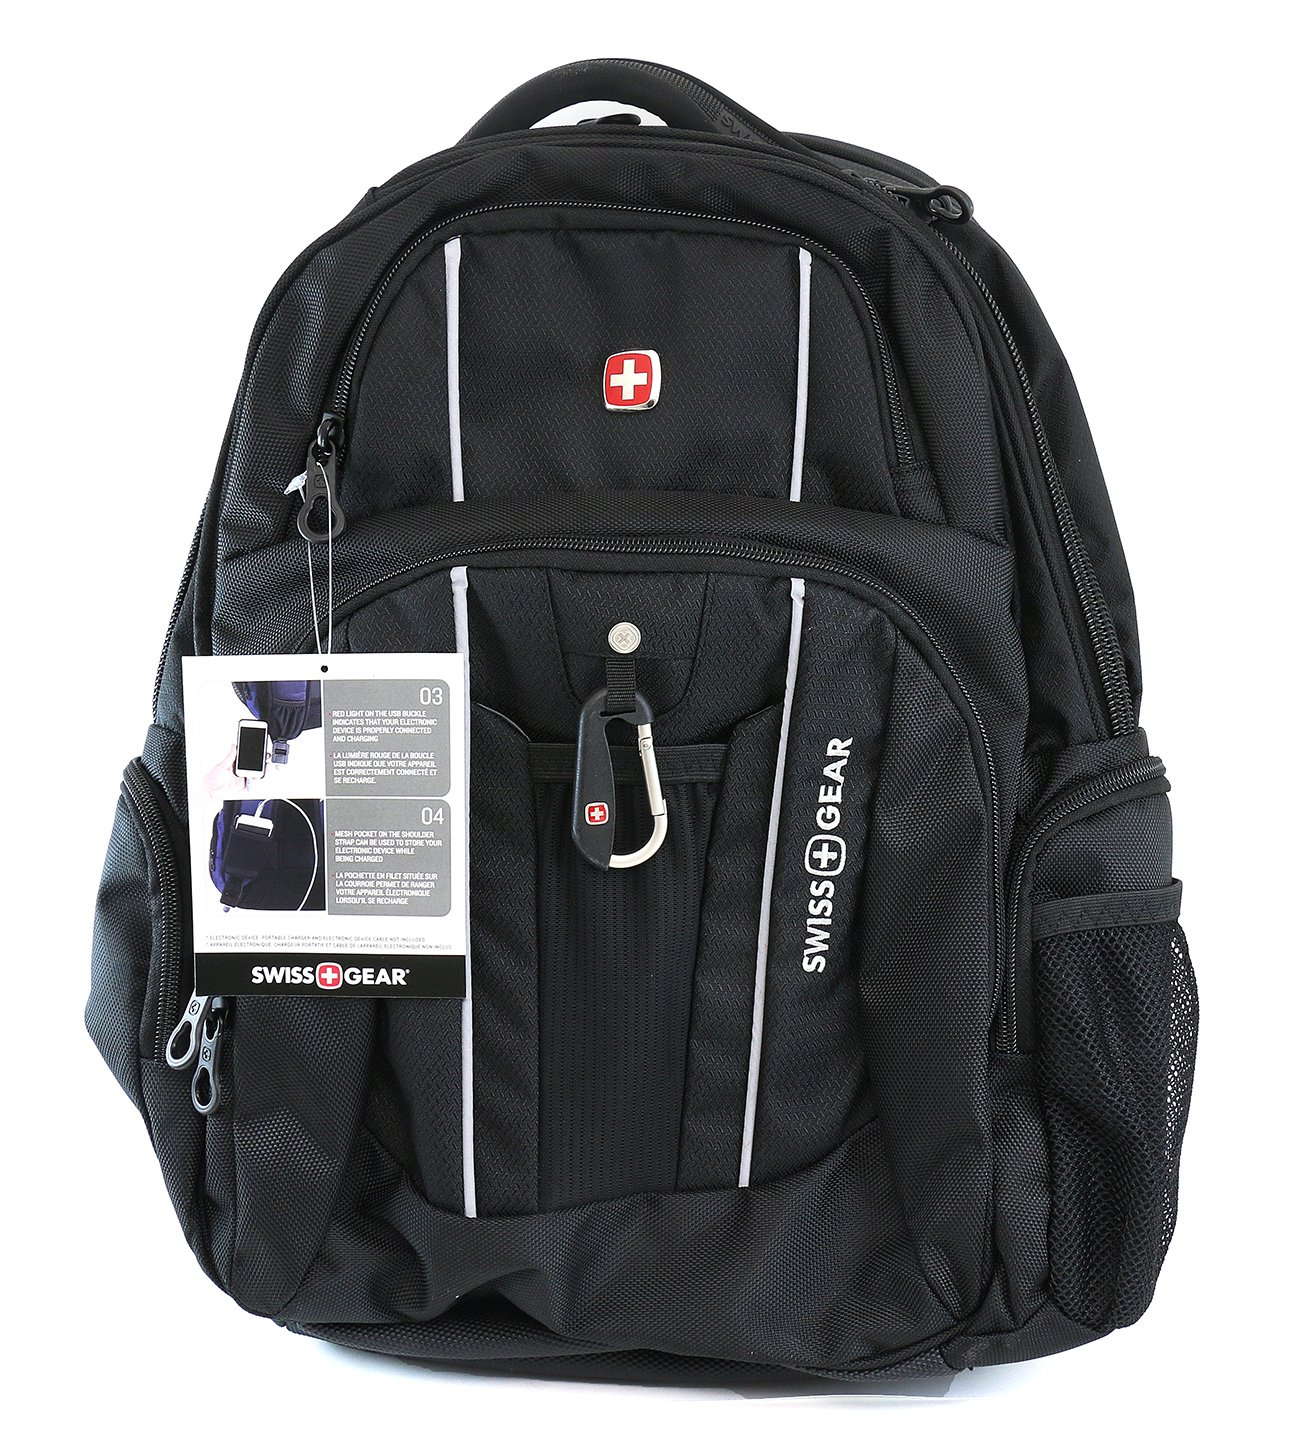 Swiss Gear - Laptop and Tablet Backpack With USB Cable Integration ...